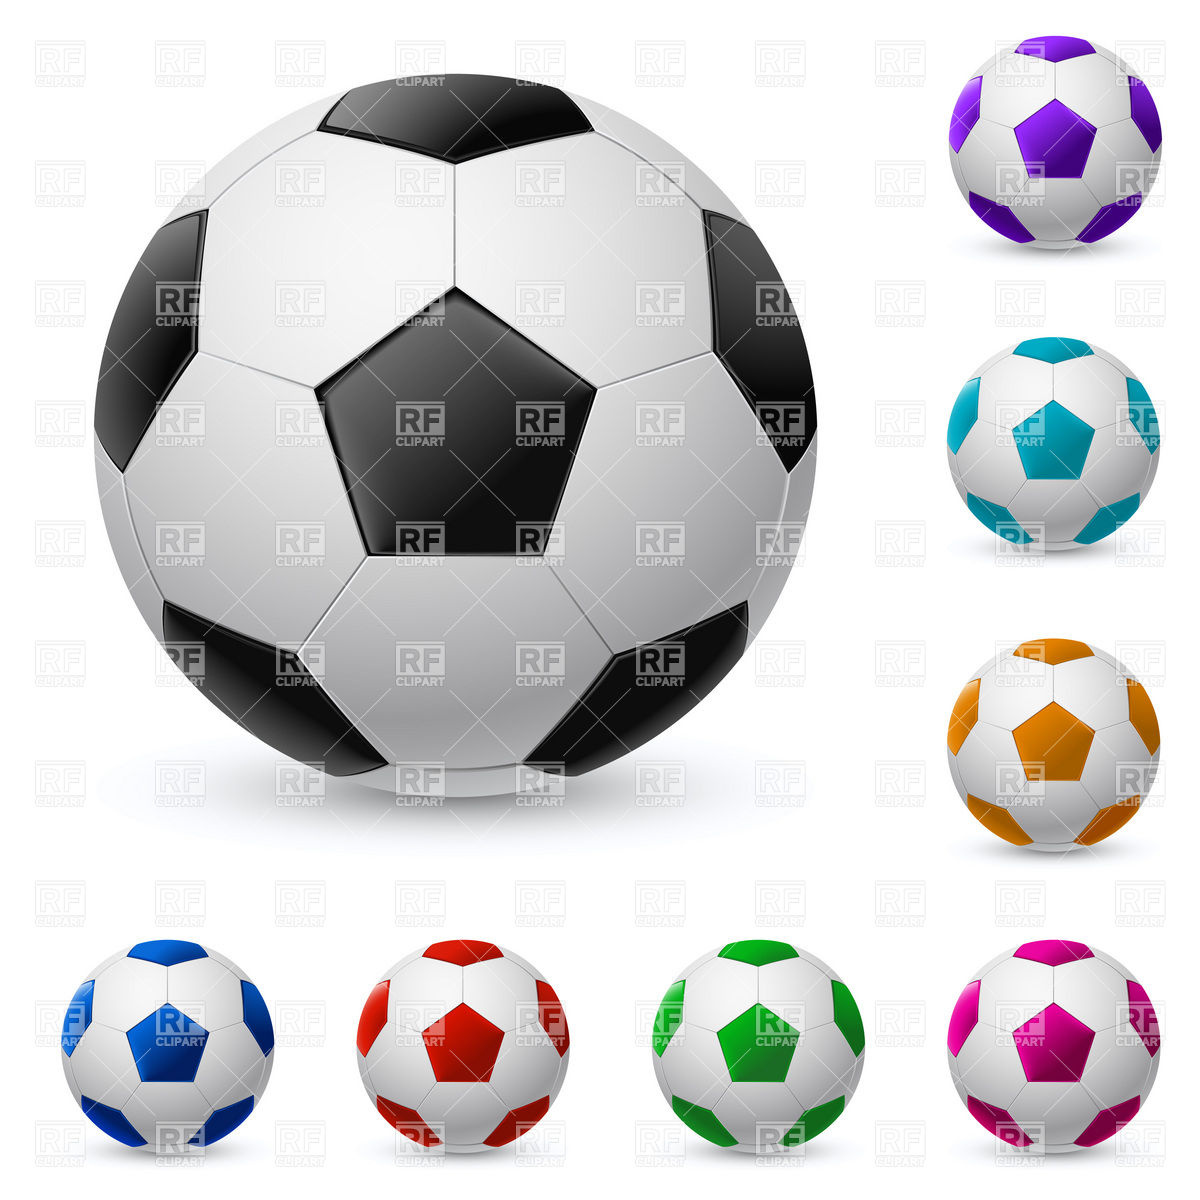 Soccer ball clipart eps jpg black and white download Generic soccer ball Vector Image #7950 – RFclipart jpg black and white download